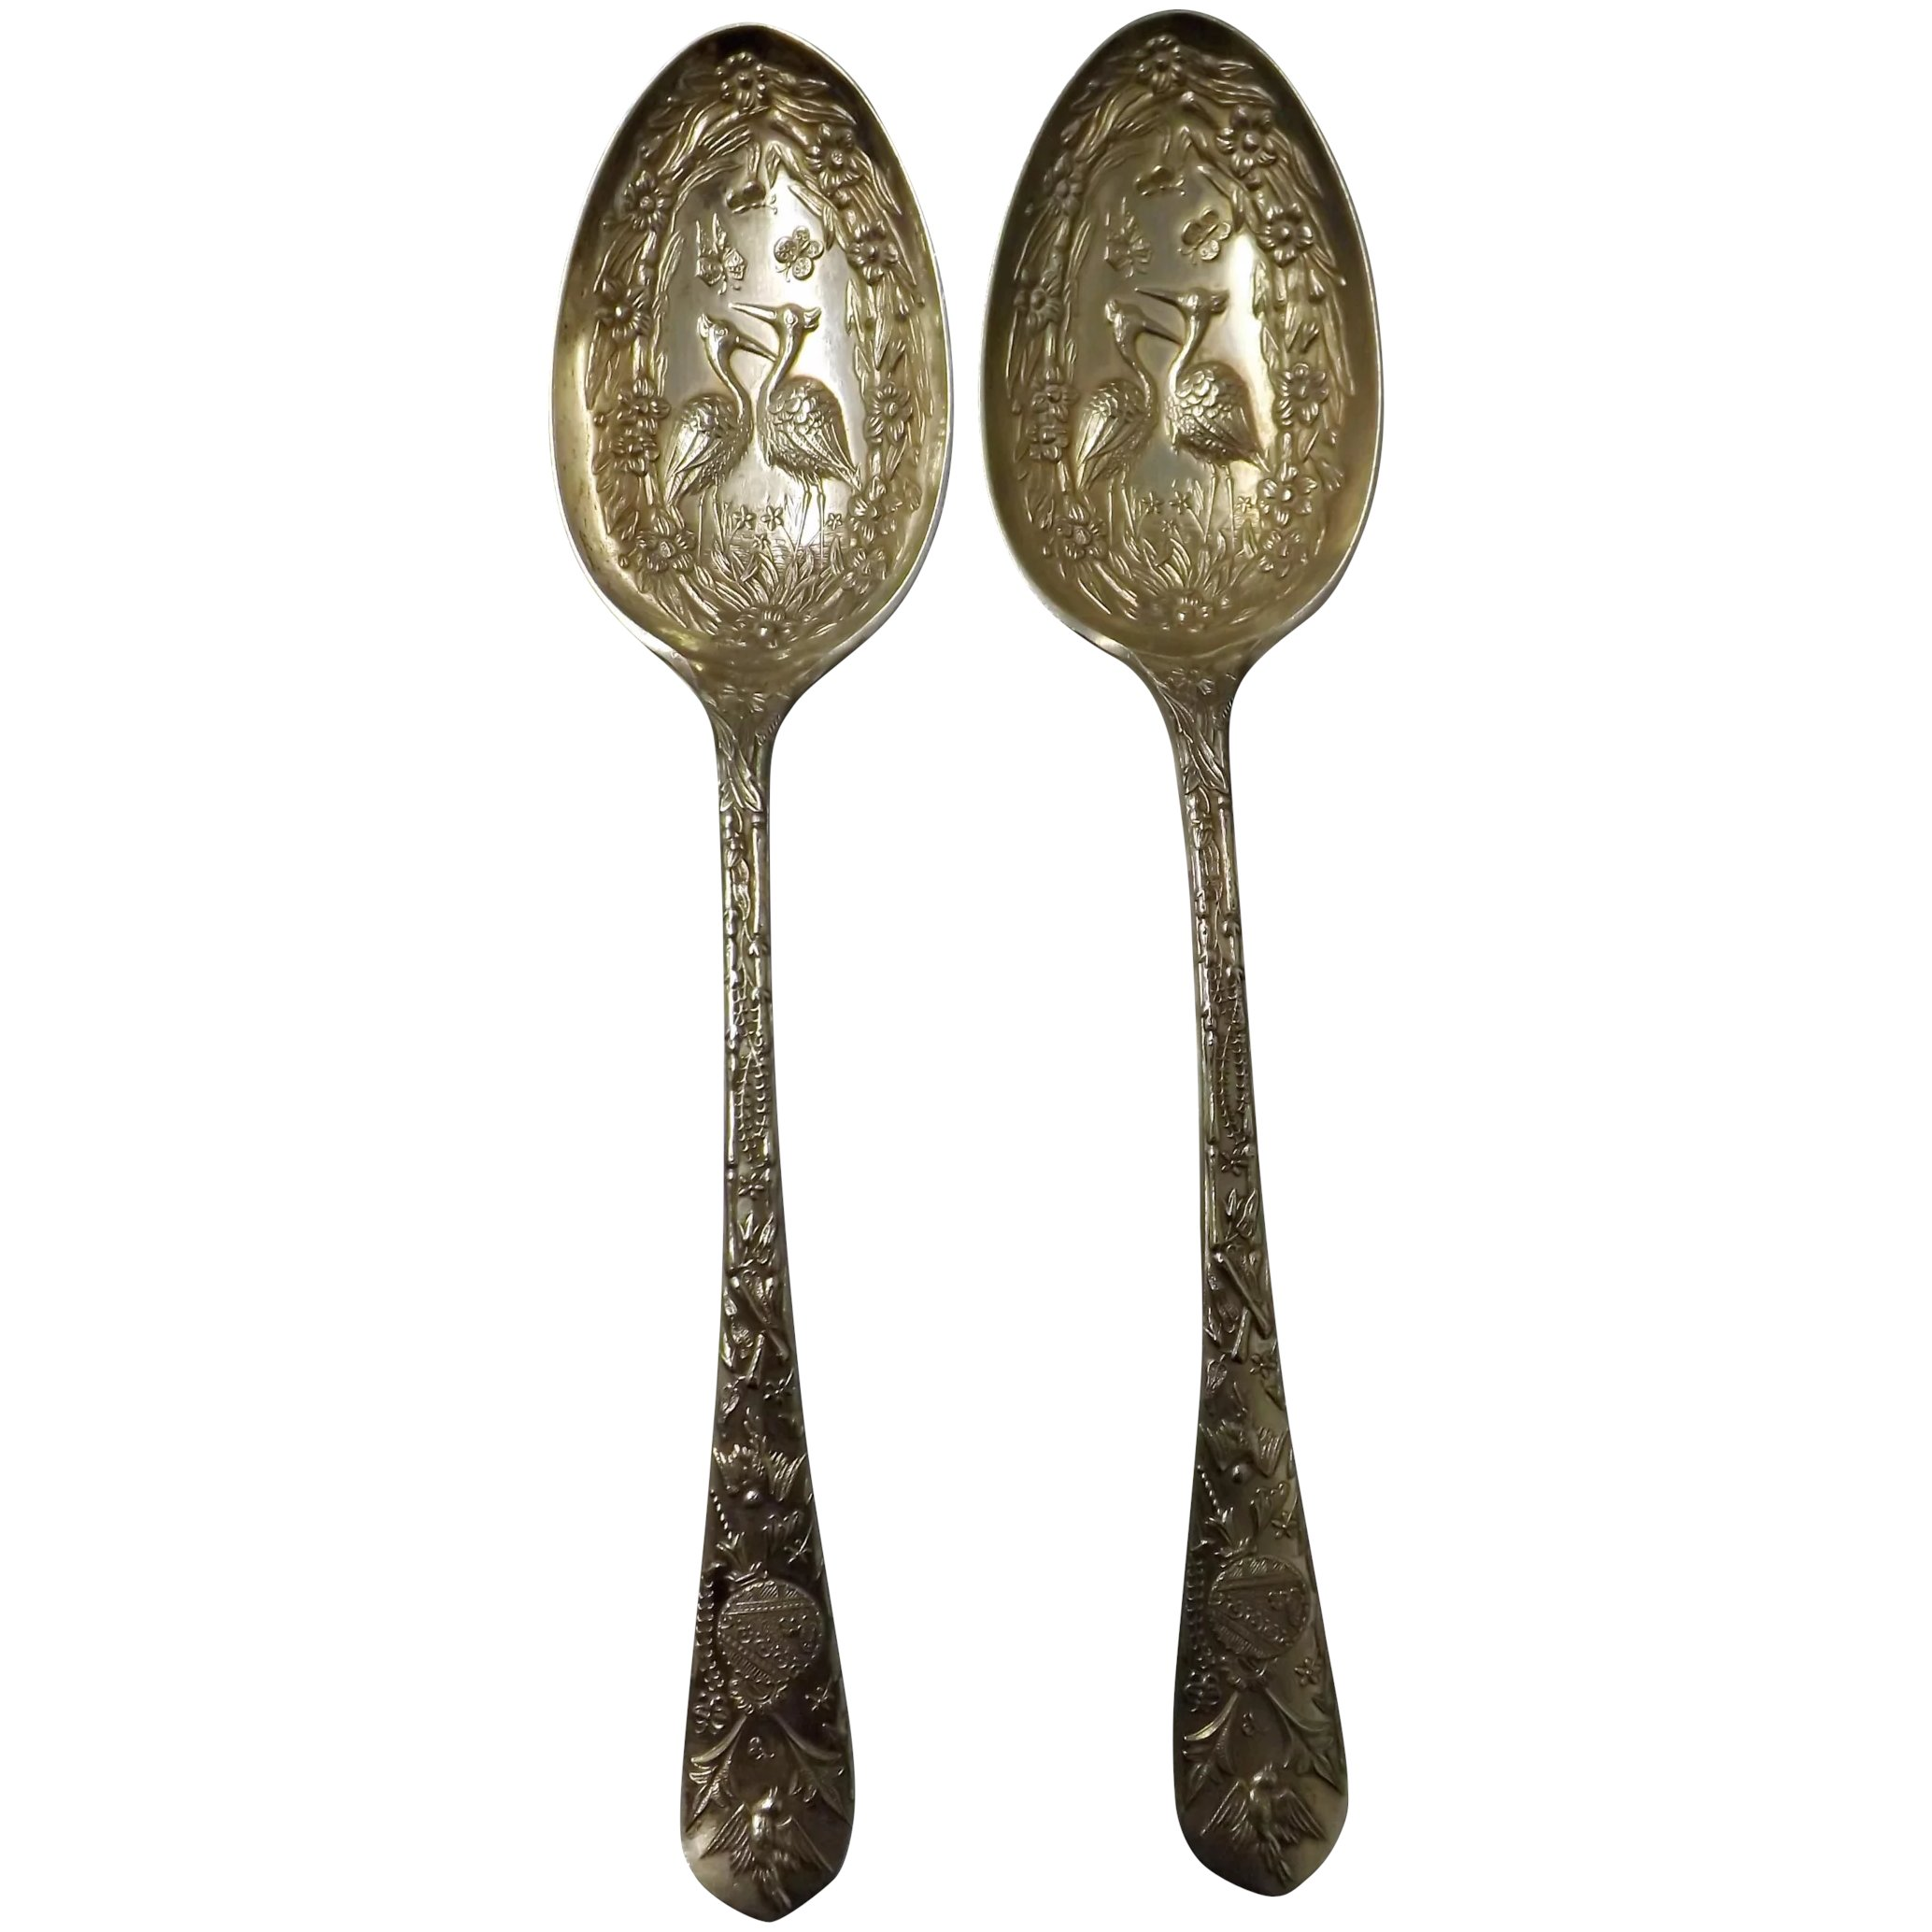 Asethetic Movement Nickel Silver Serving Spoons - Dated 1880 England